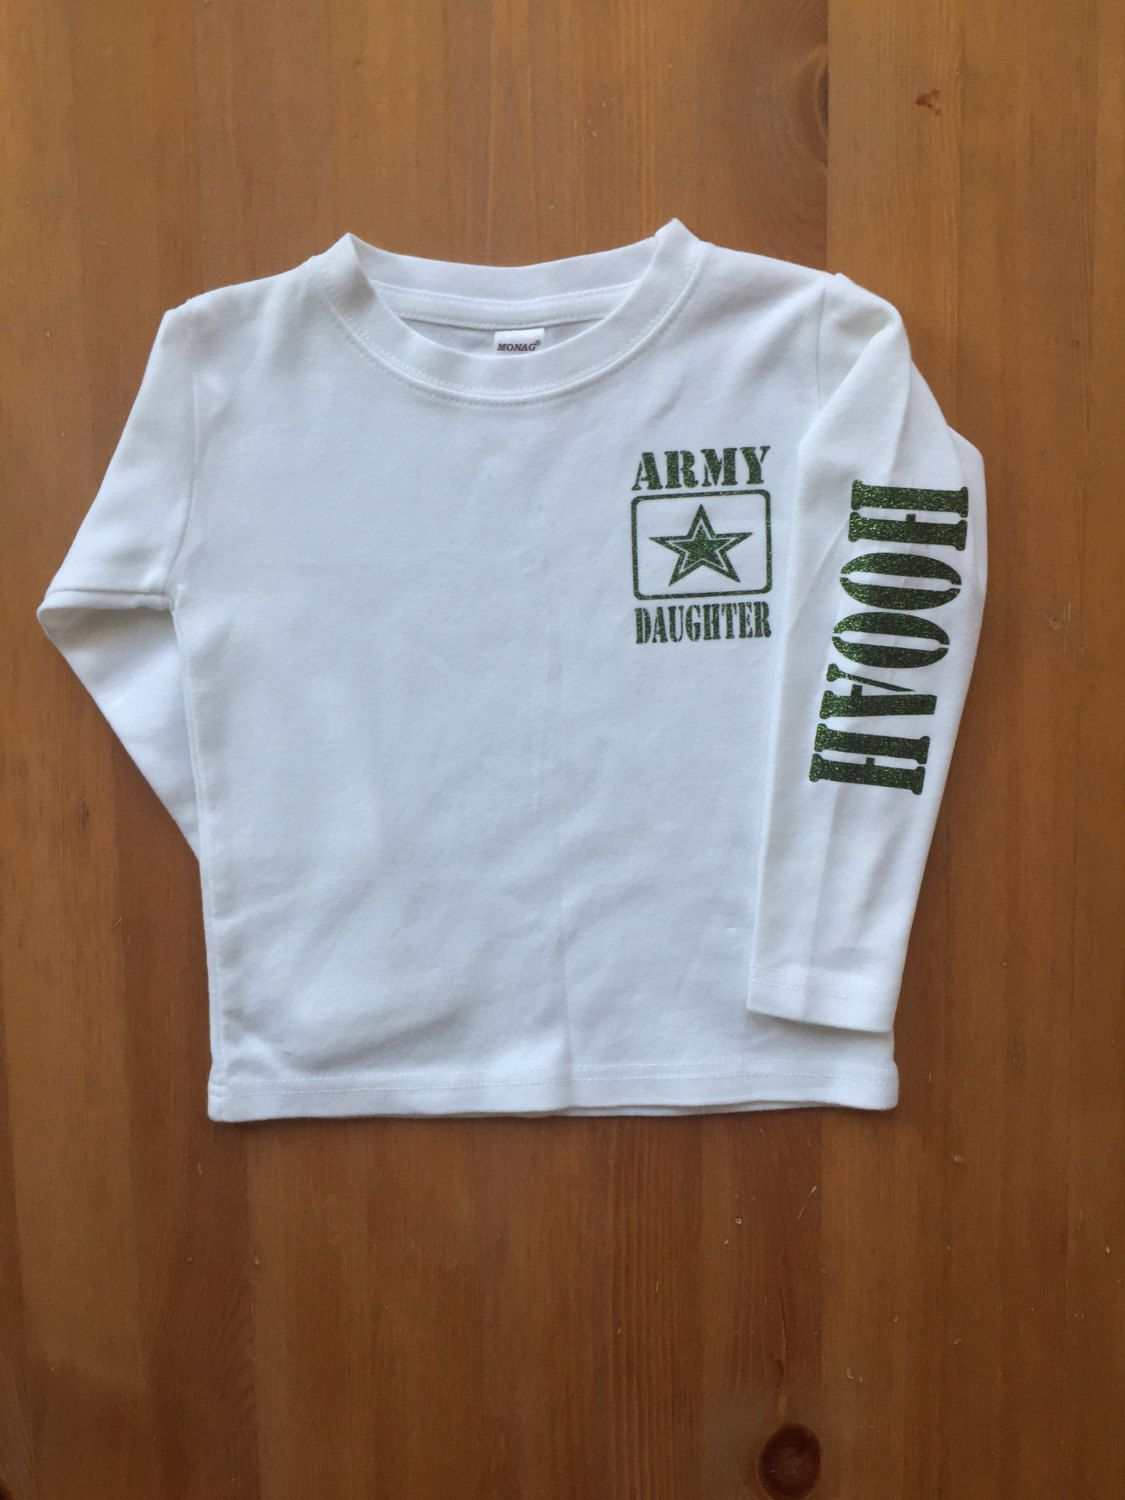 337e535f Army Daughter, Army Son, Army Brat, Army Niece, Army Nephew, Army Kid, Army  Shirt, Army by LovingMyHero143 on Etsy